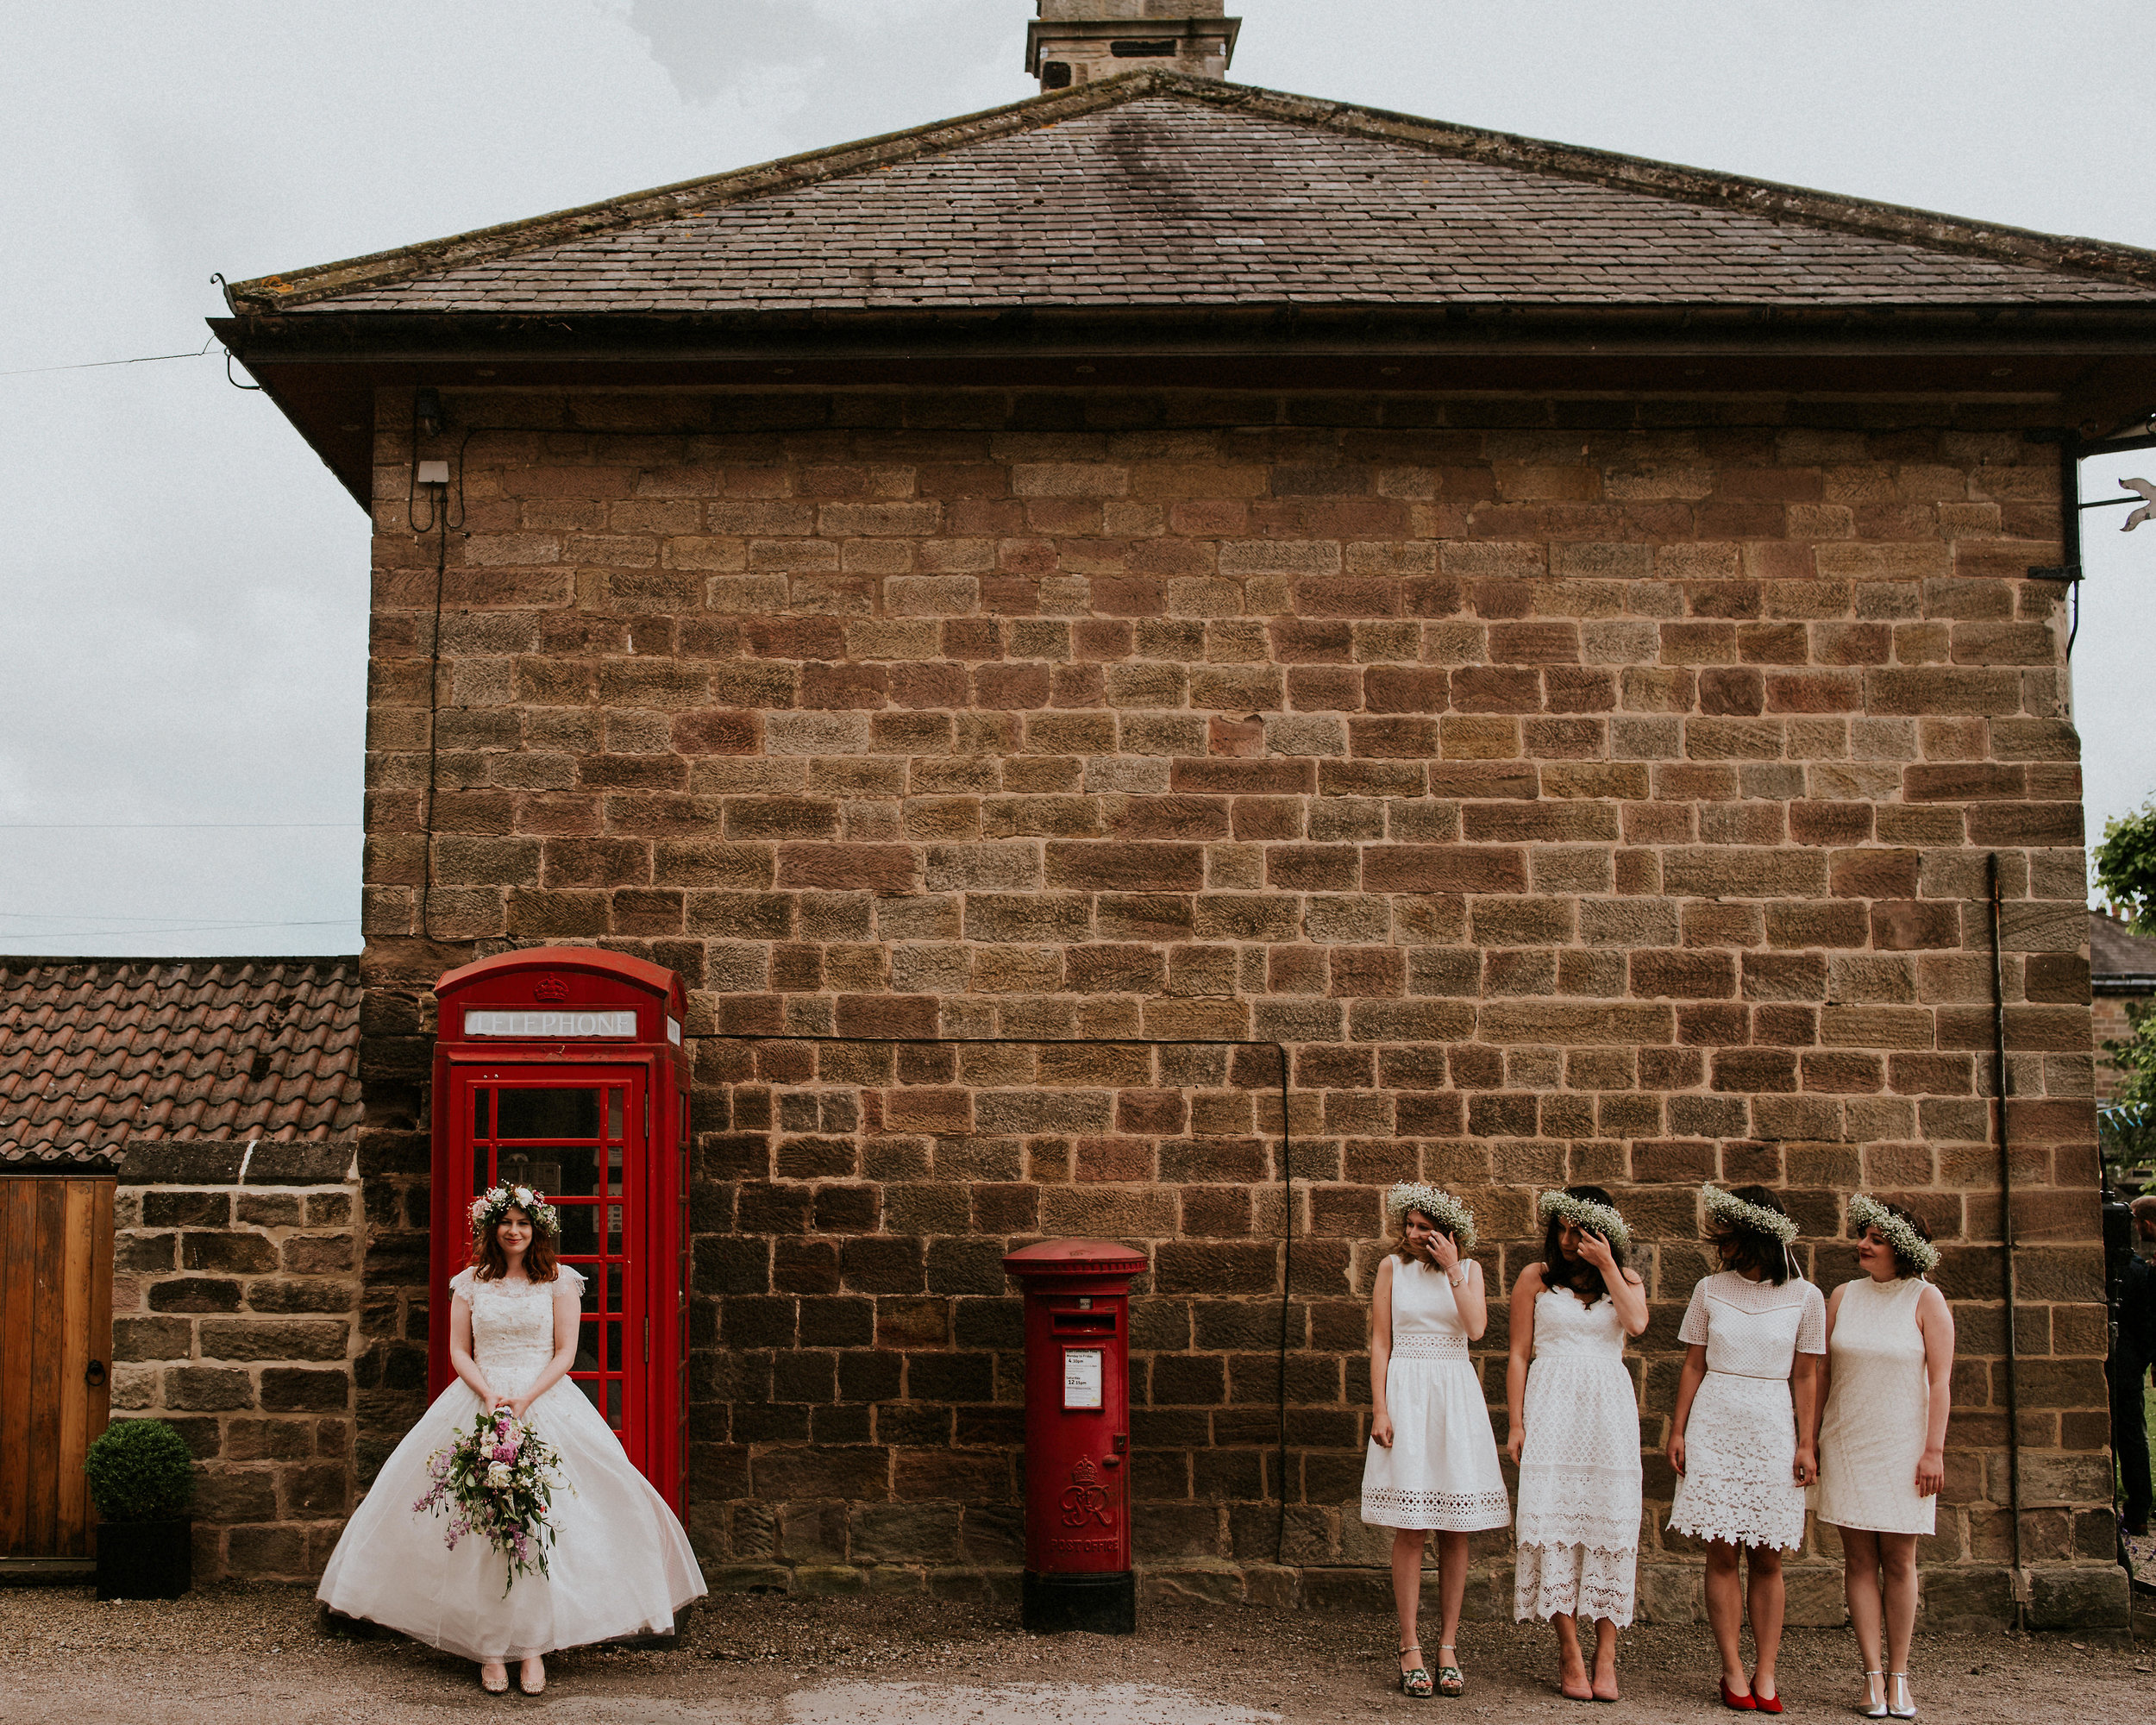 From the age old grandeur of Fountains Abbey to the quintessential village feels of Ripley Town Hall. From boho vibes to colourful styling. This wedding has it all.